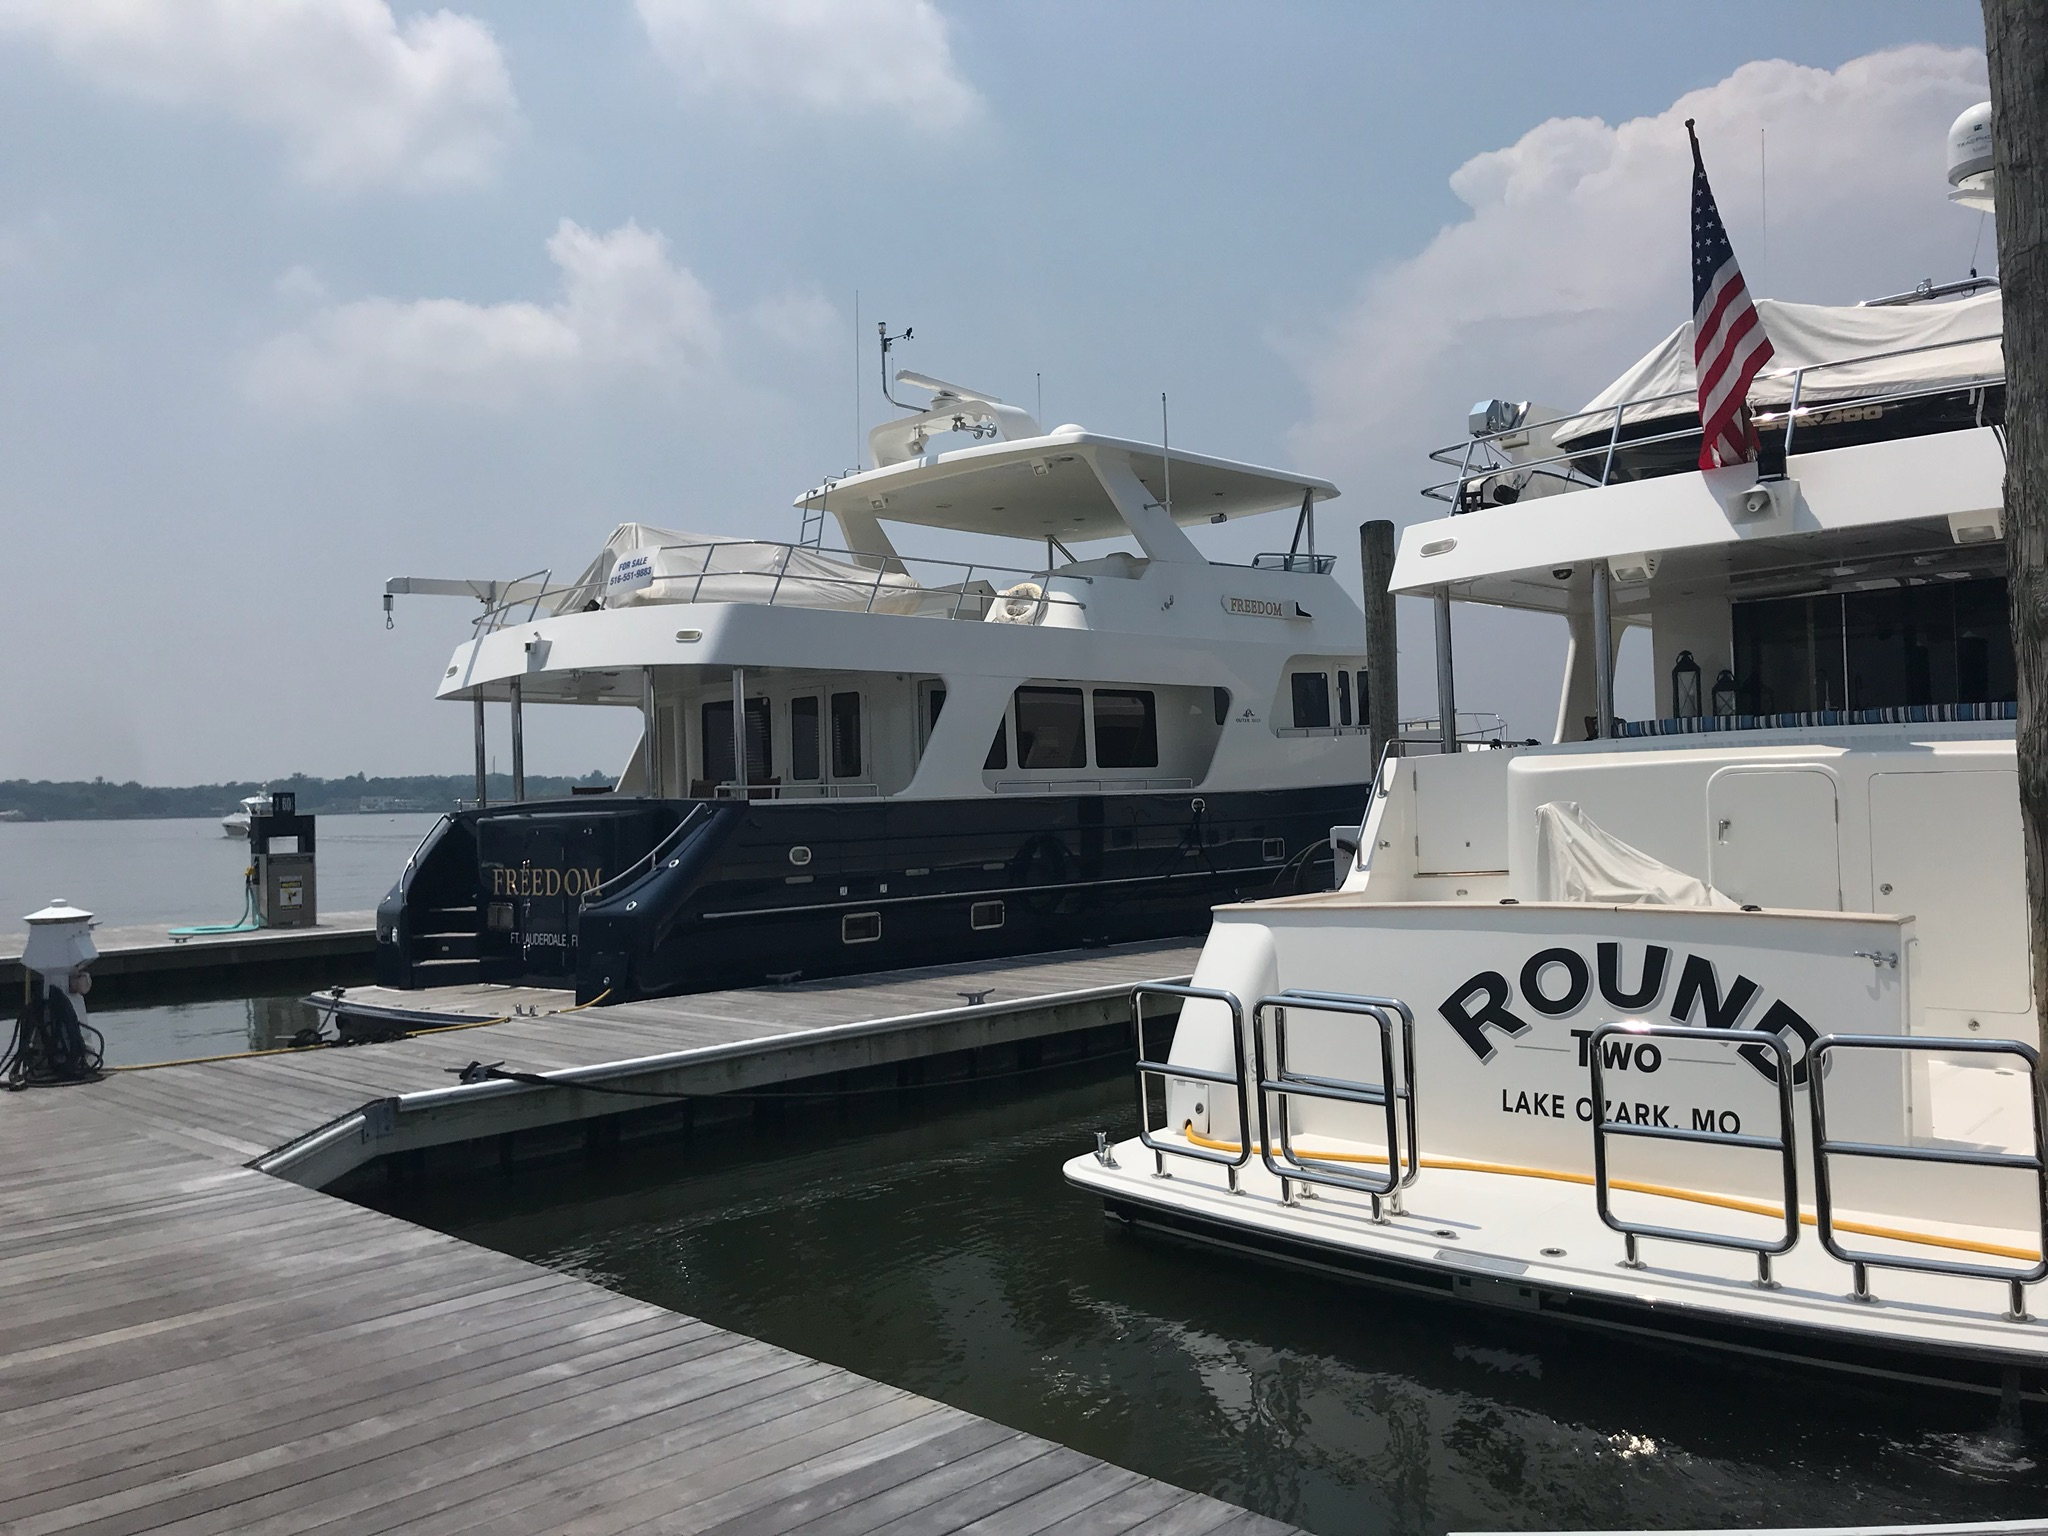 Two Outer Reef Yachts Docked in New York, New York